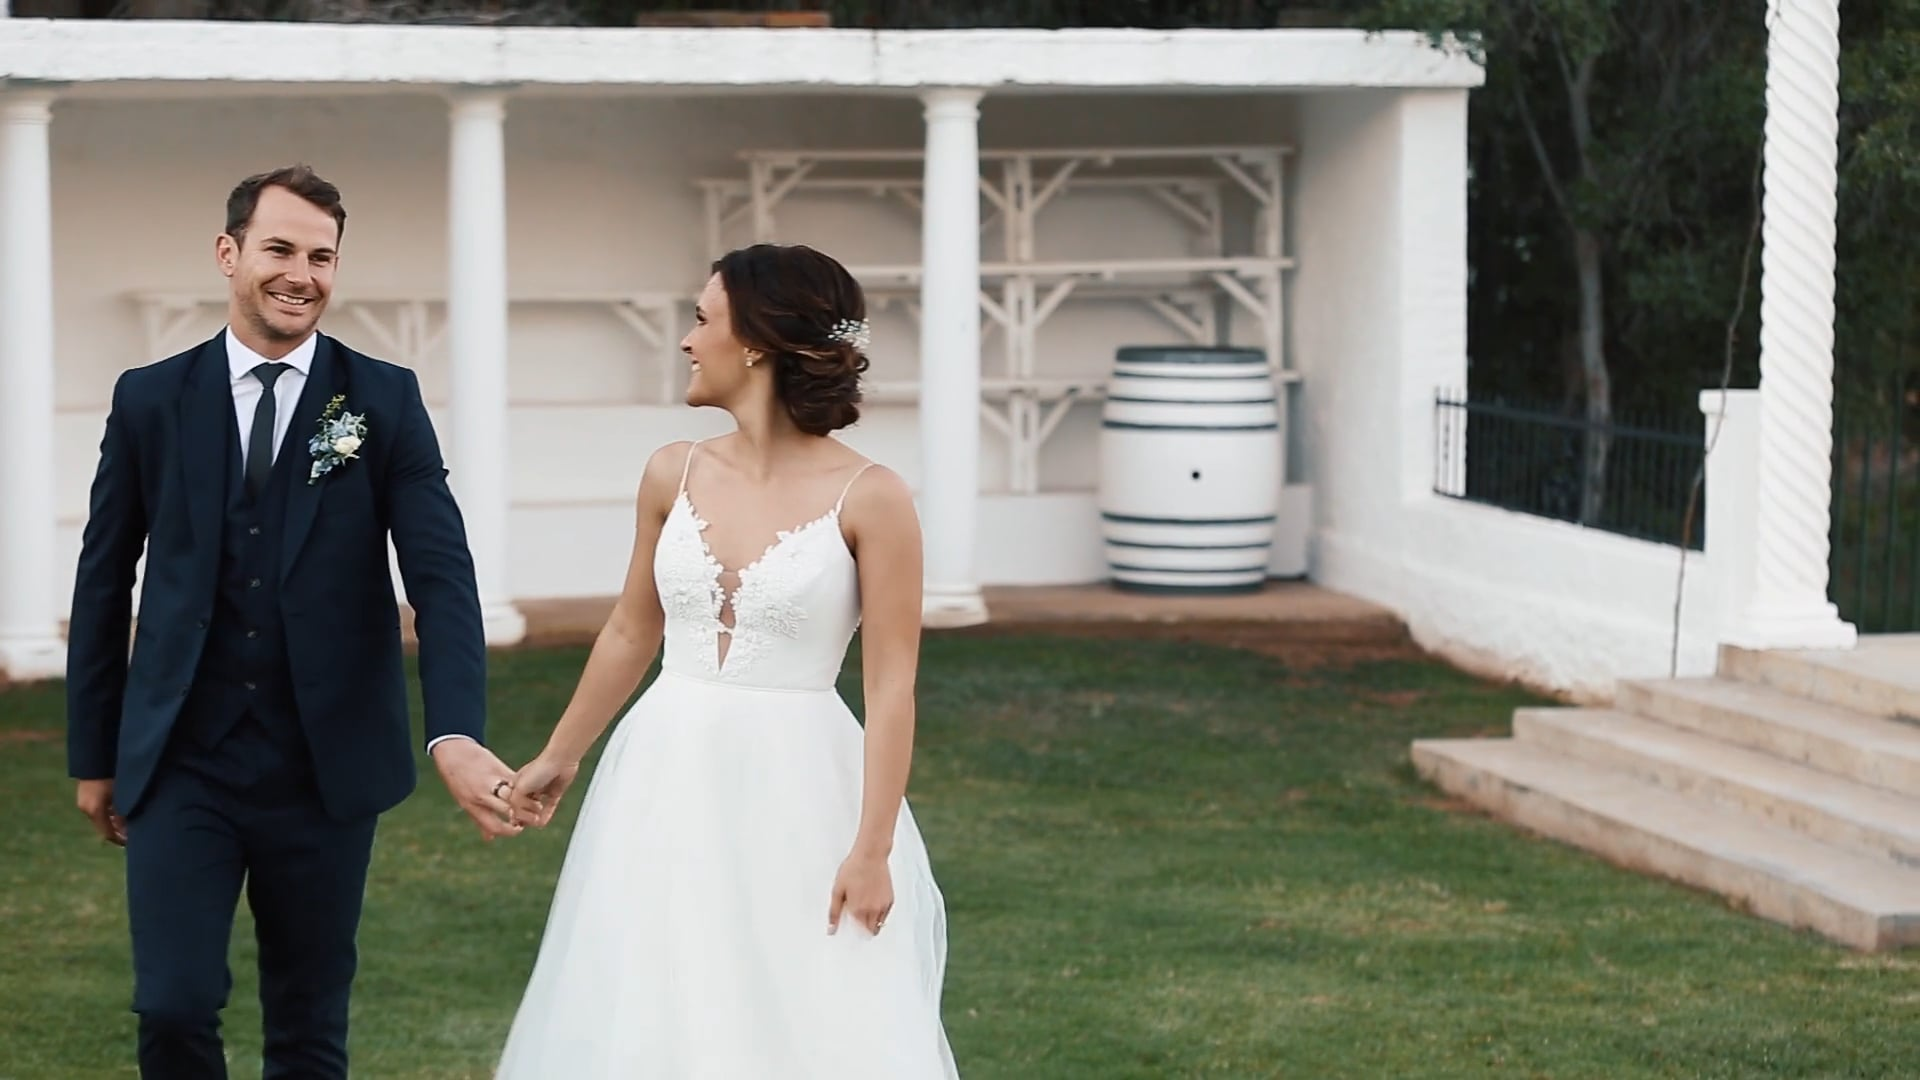 Dirk and Jenny wedding preview, Duvon Robertson - 20 October 2018